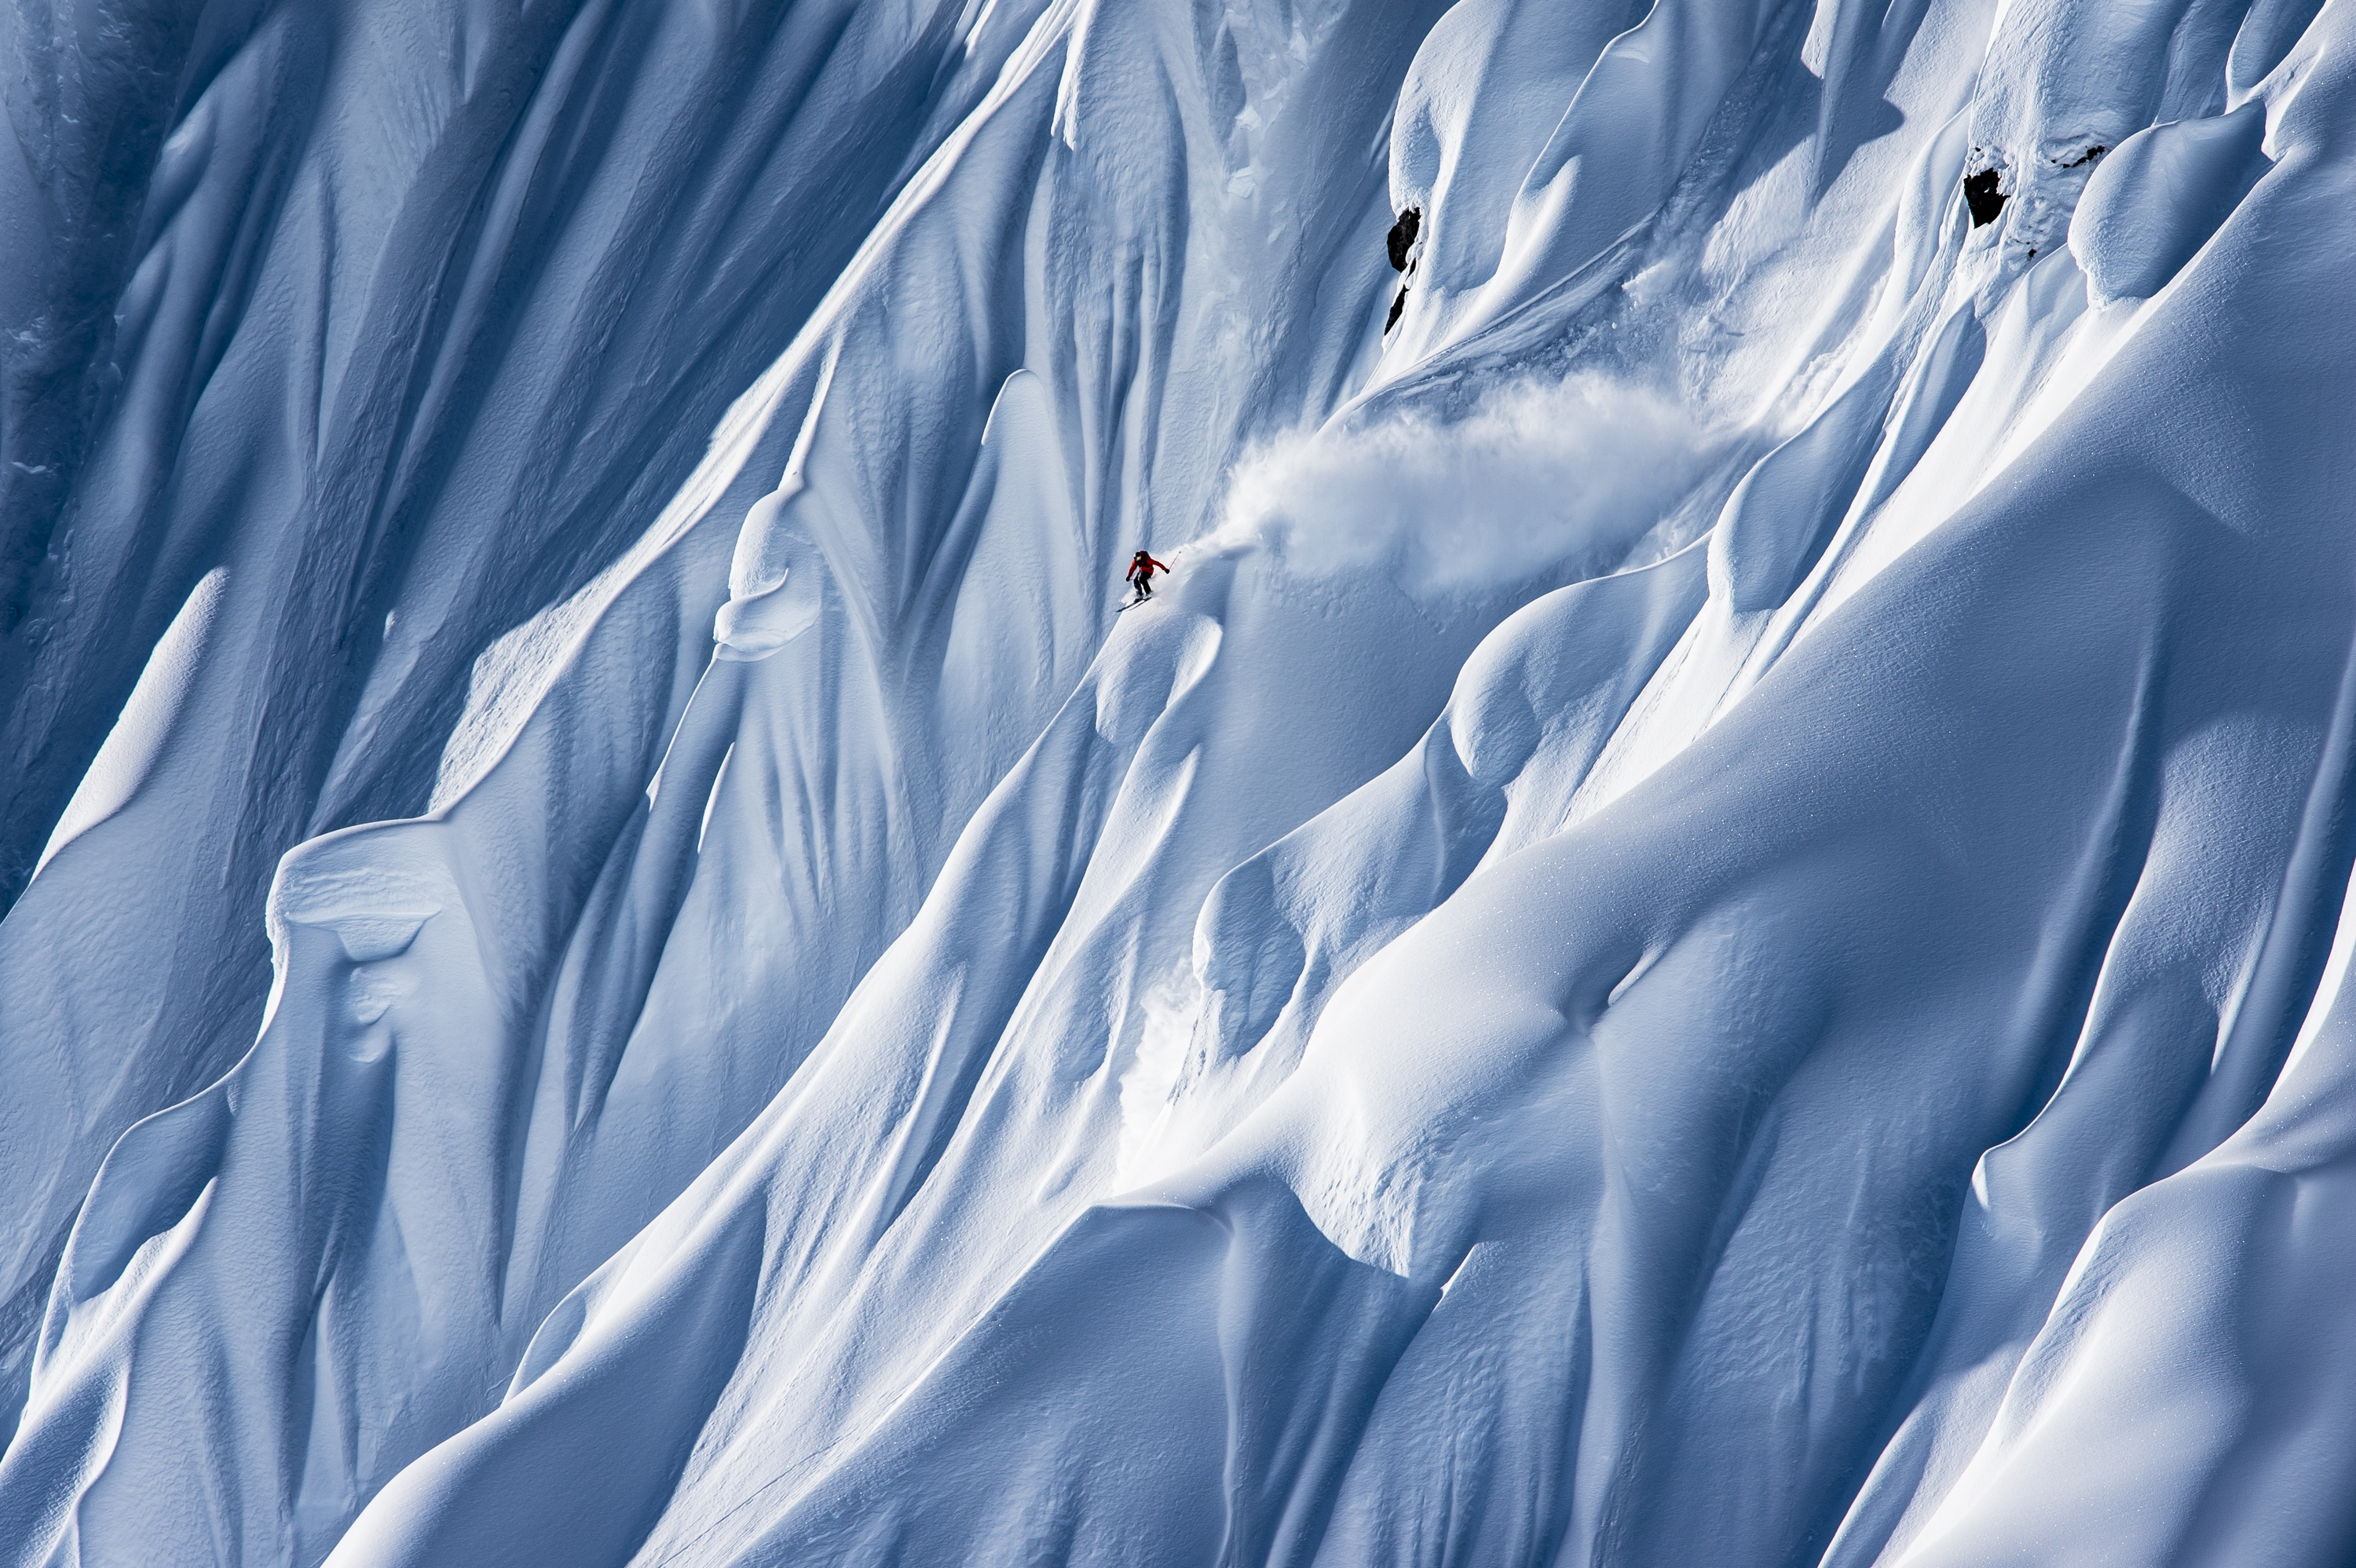 Alaska's maritime snowpack allows heli-skiers to descend much steeper lines than would be available in interior locations. (file photo: Red Bull Media House)